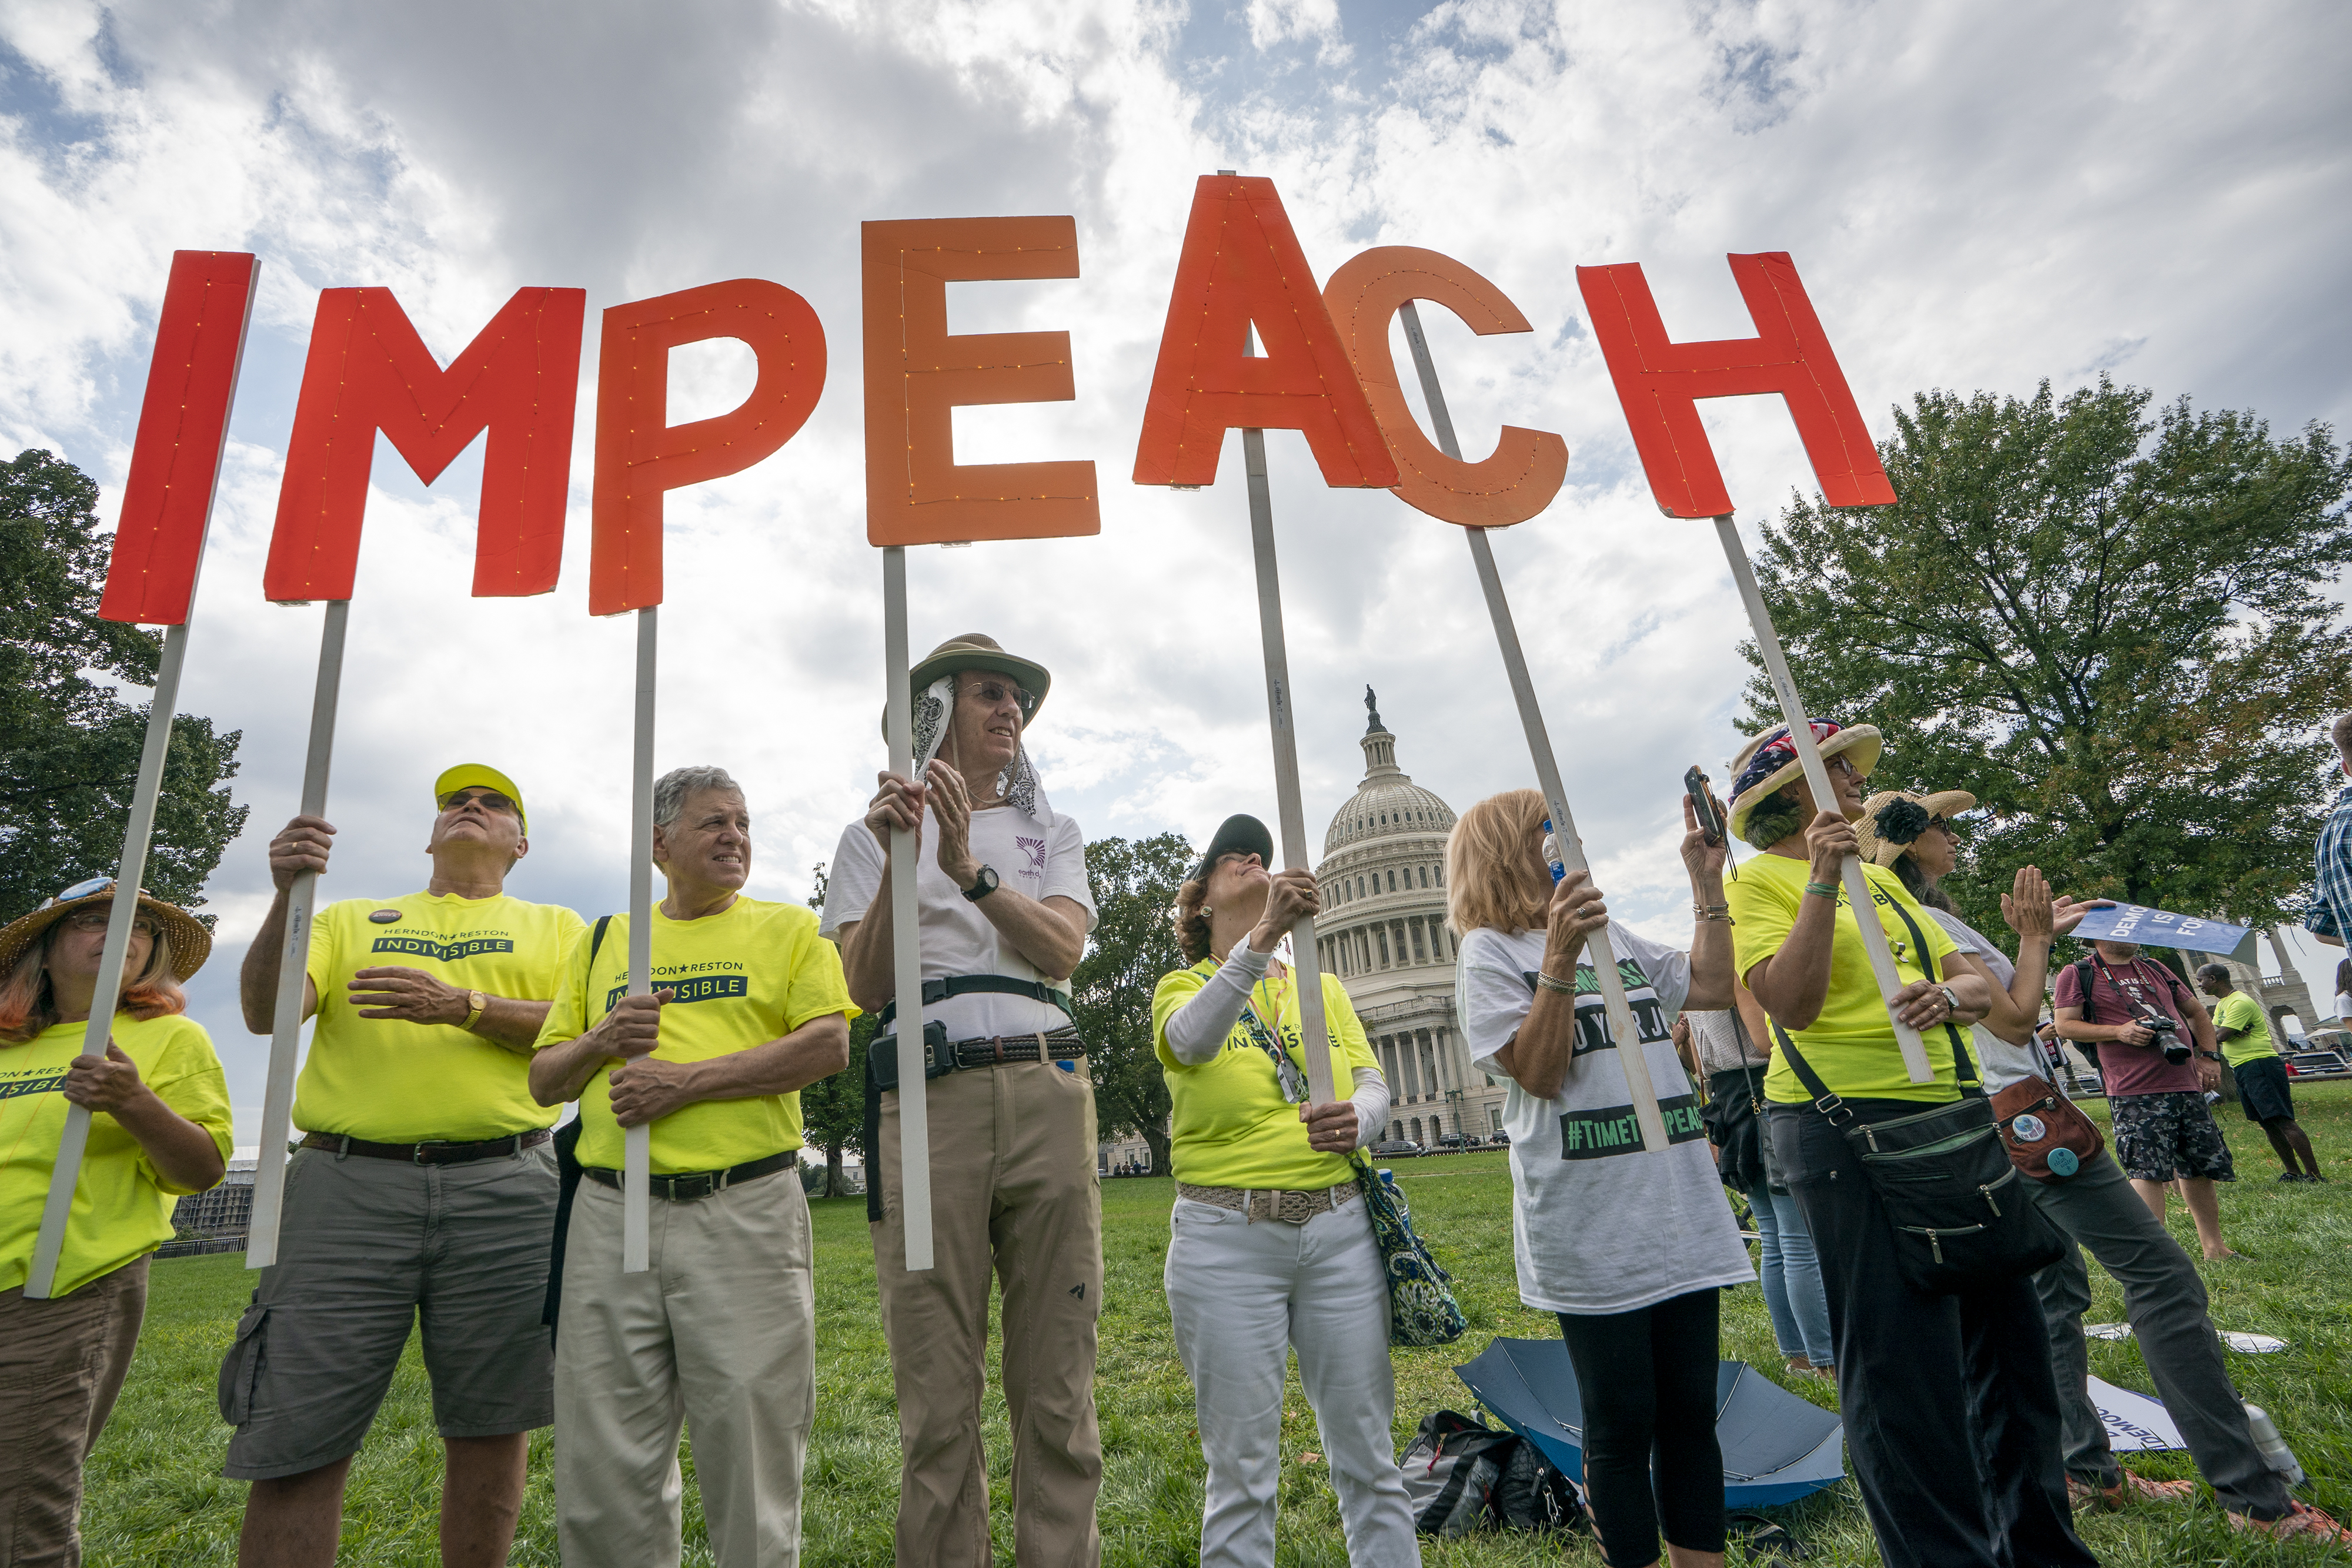 Activists rally for the impeachment of President Donald Trump, at the Capitol in Washington on Sept. 26, 2019.  (Photo: J. Scott Applewhite/AP)